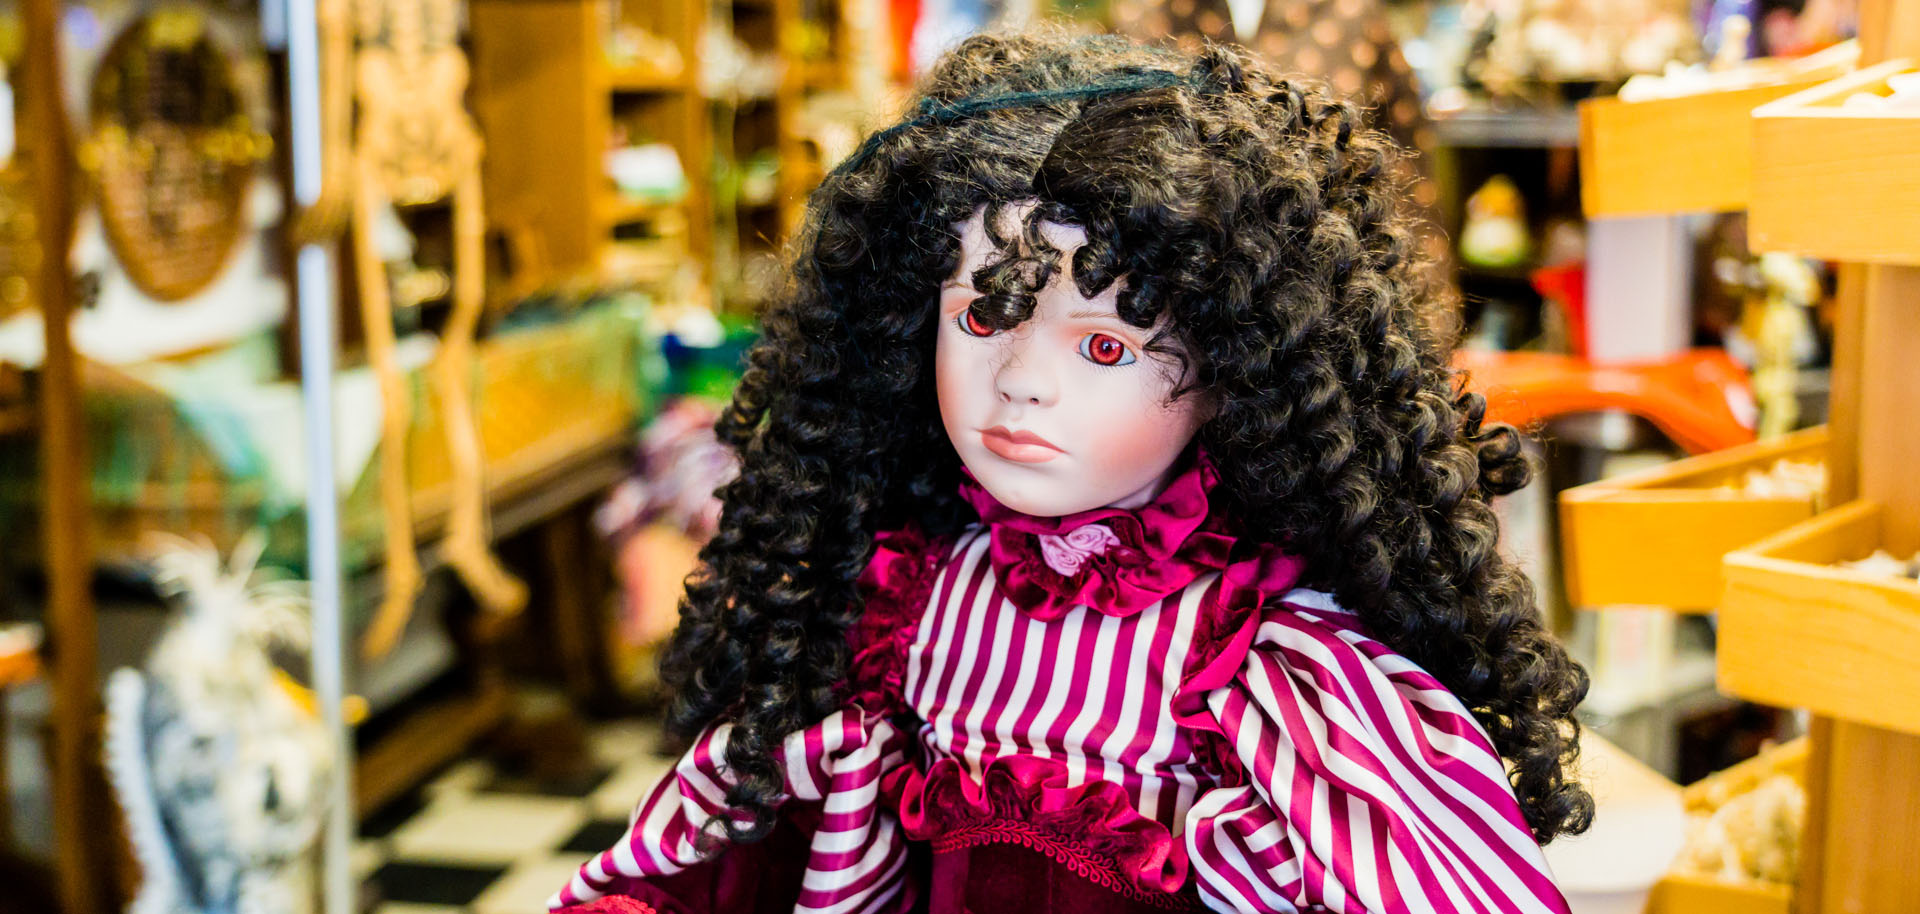 A doll sold at Good Mischief in Tulsa, Oklahoma.